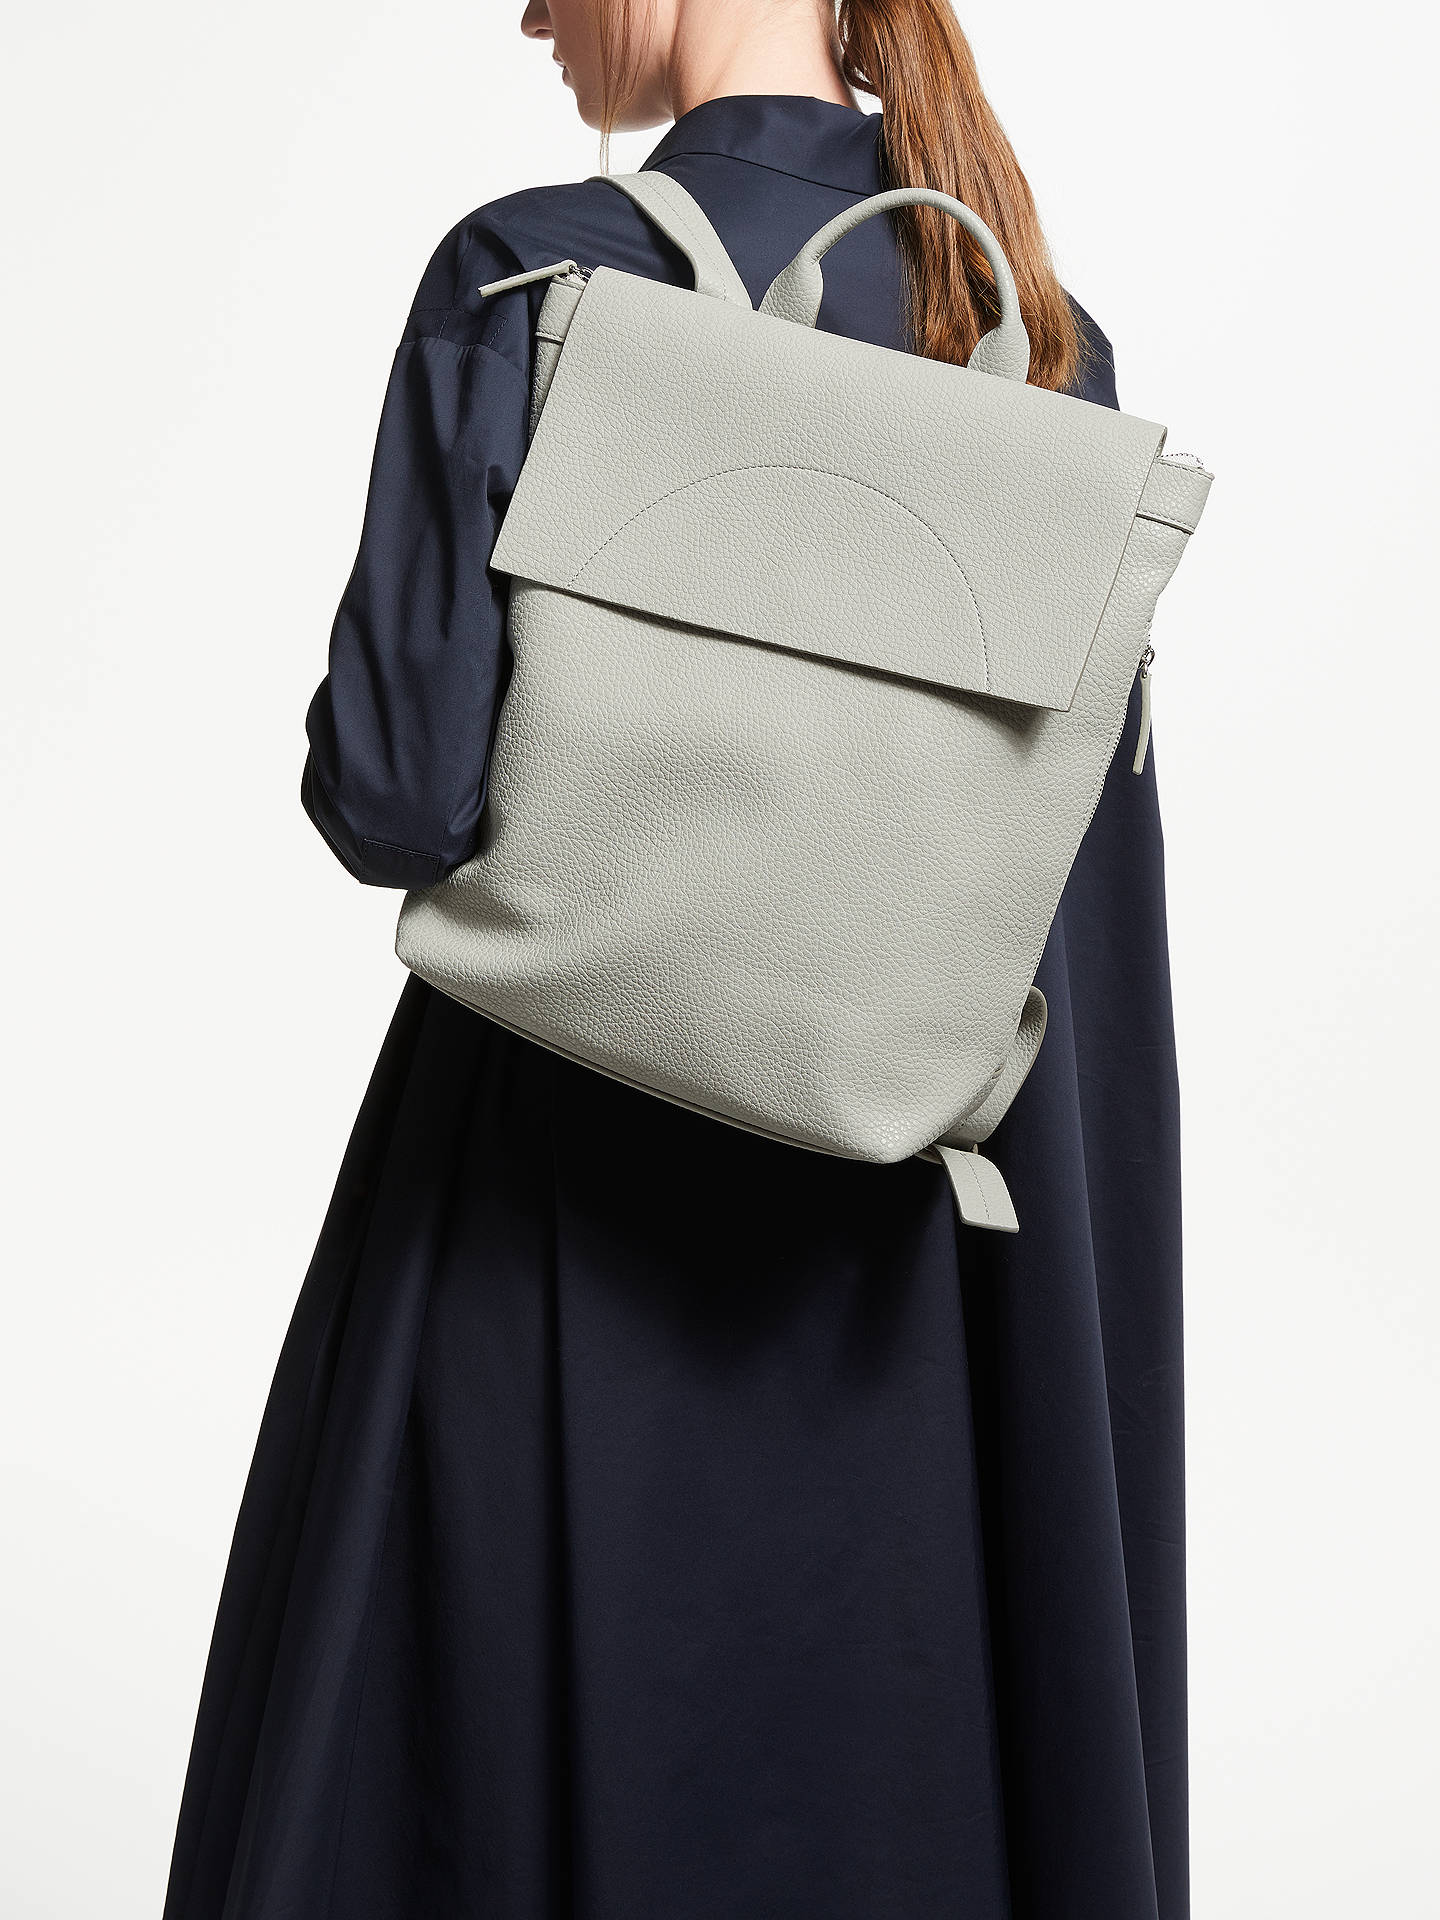 BuyKin Sia Foldover Backpack, Grey Online at johnlewis.com